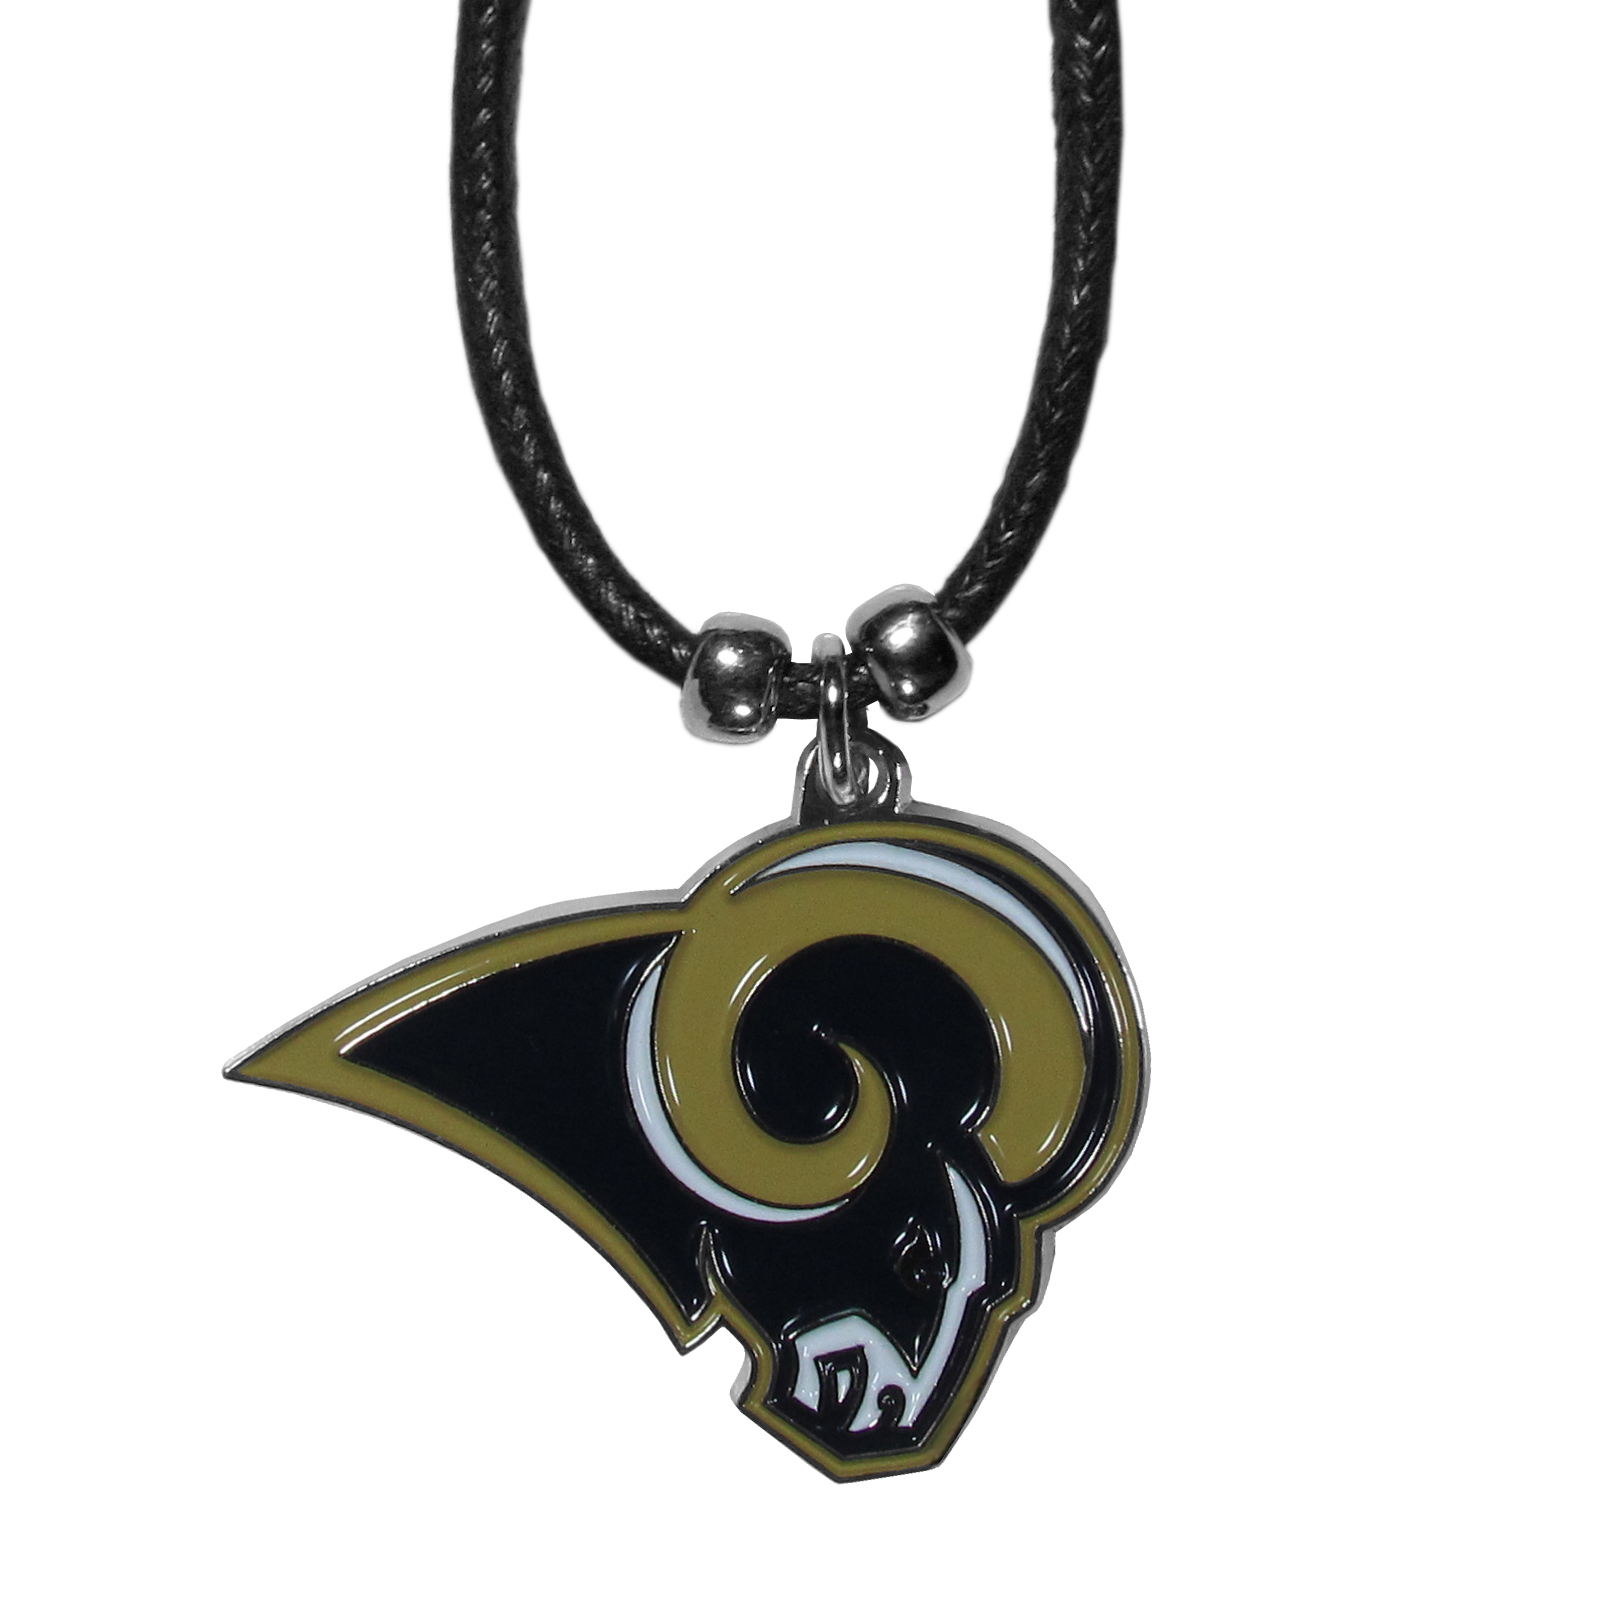 Los Angeles Rams Cord Necklace - This classic style cotton cord necklace features an extra large Los Angeles Rams pendant on a 21 inch cord.